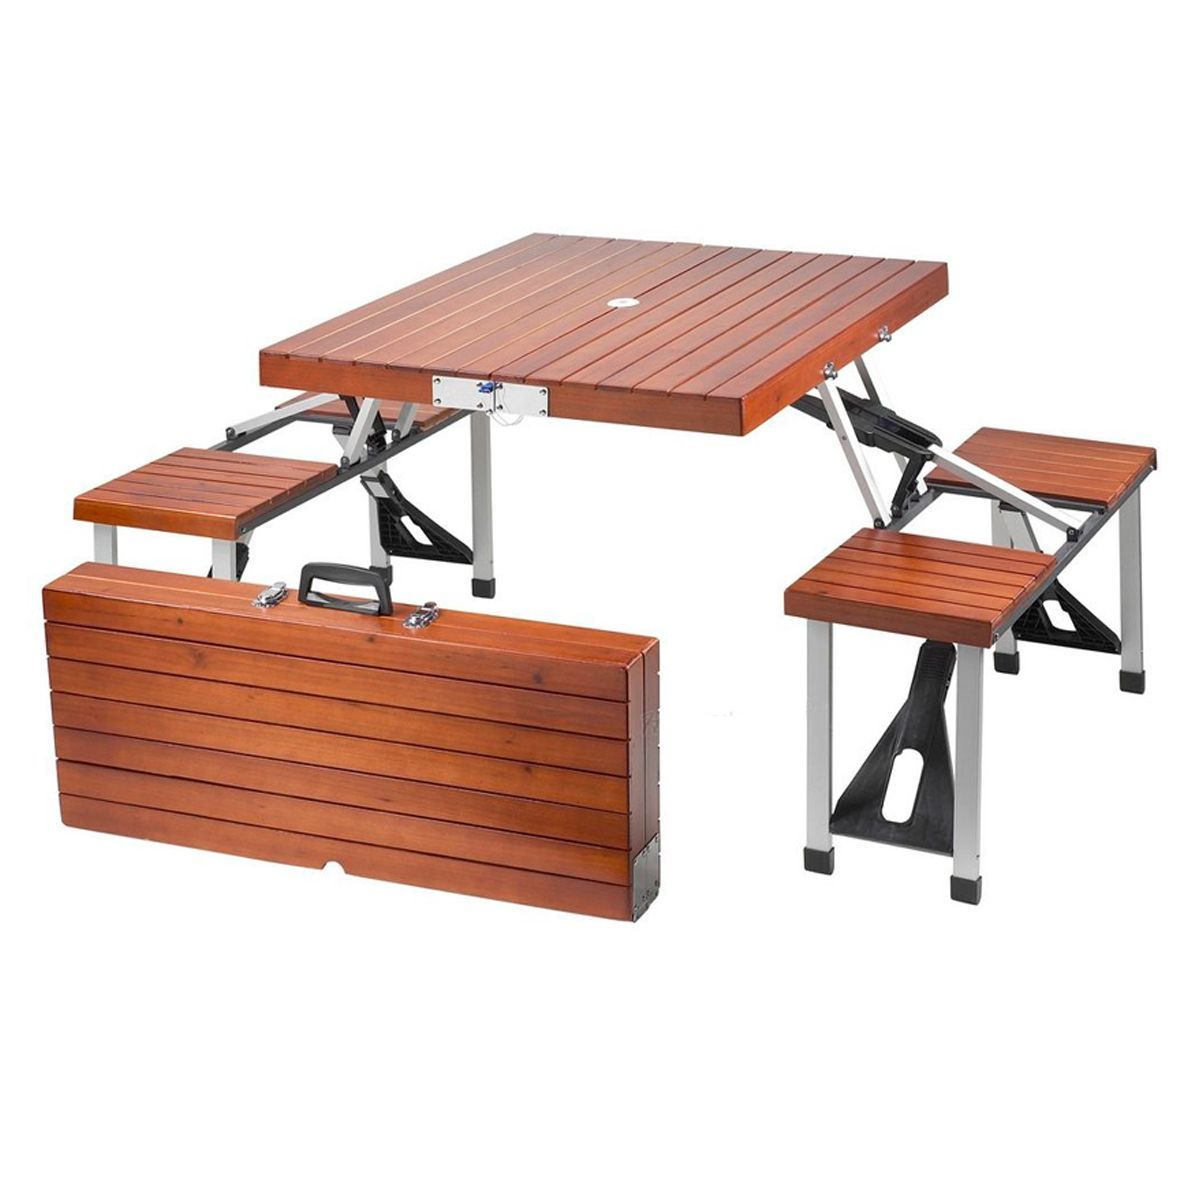 Online Shopping Bedding Furniture Electronics Jewelry Clothing More Folding Picnic Table Wooden Picnic Tables Portable Picnic Table